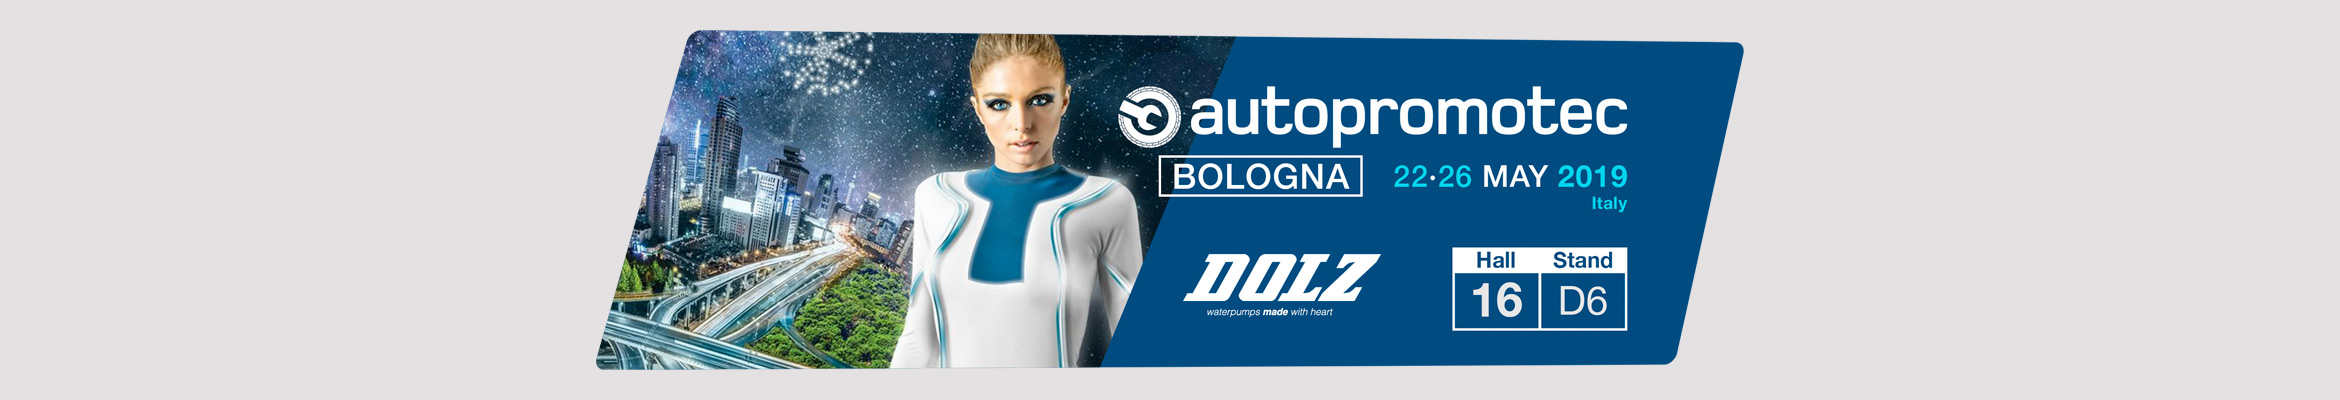 automechanika-bologna